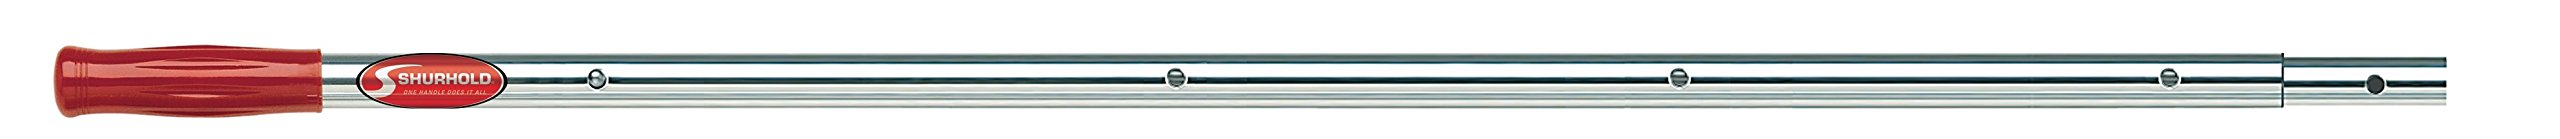 Shurhold 833 6' Telescoping Extension Handle with 40''-72'' Locking Length by Shurhold